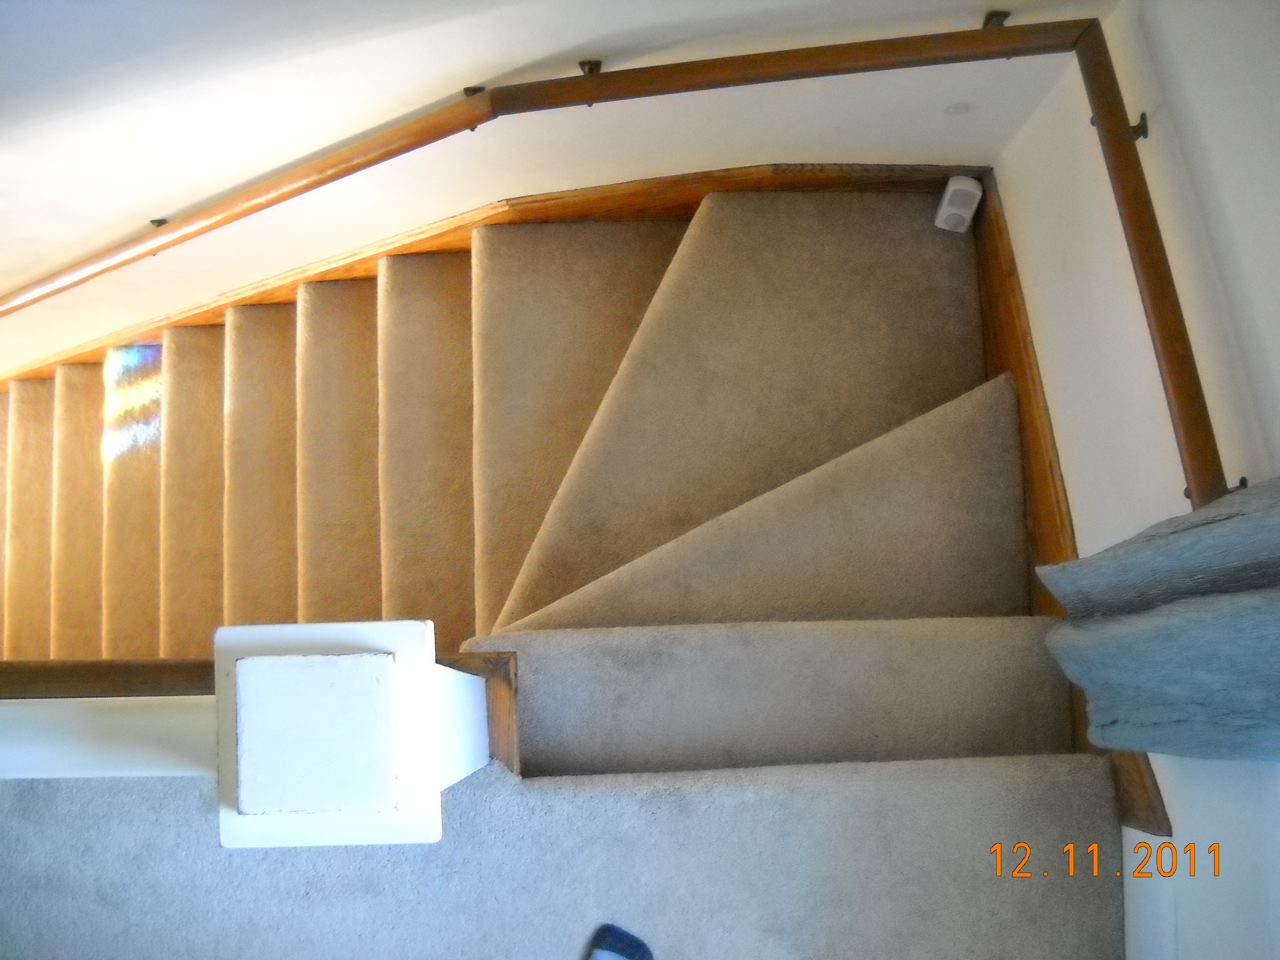 How to build winder stairs pictures to pin on pinterest